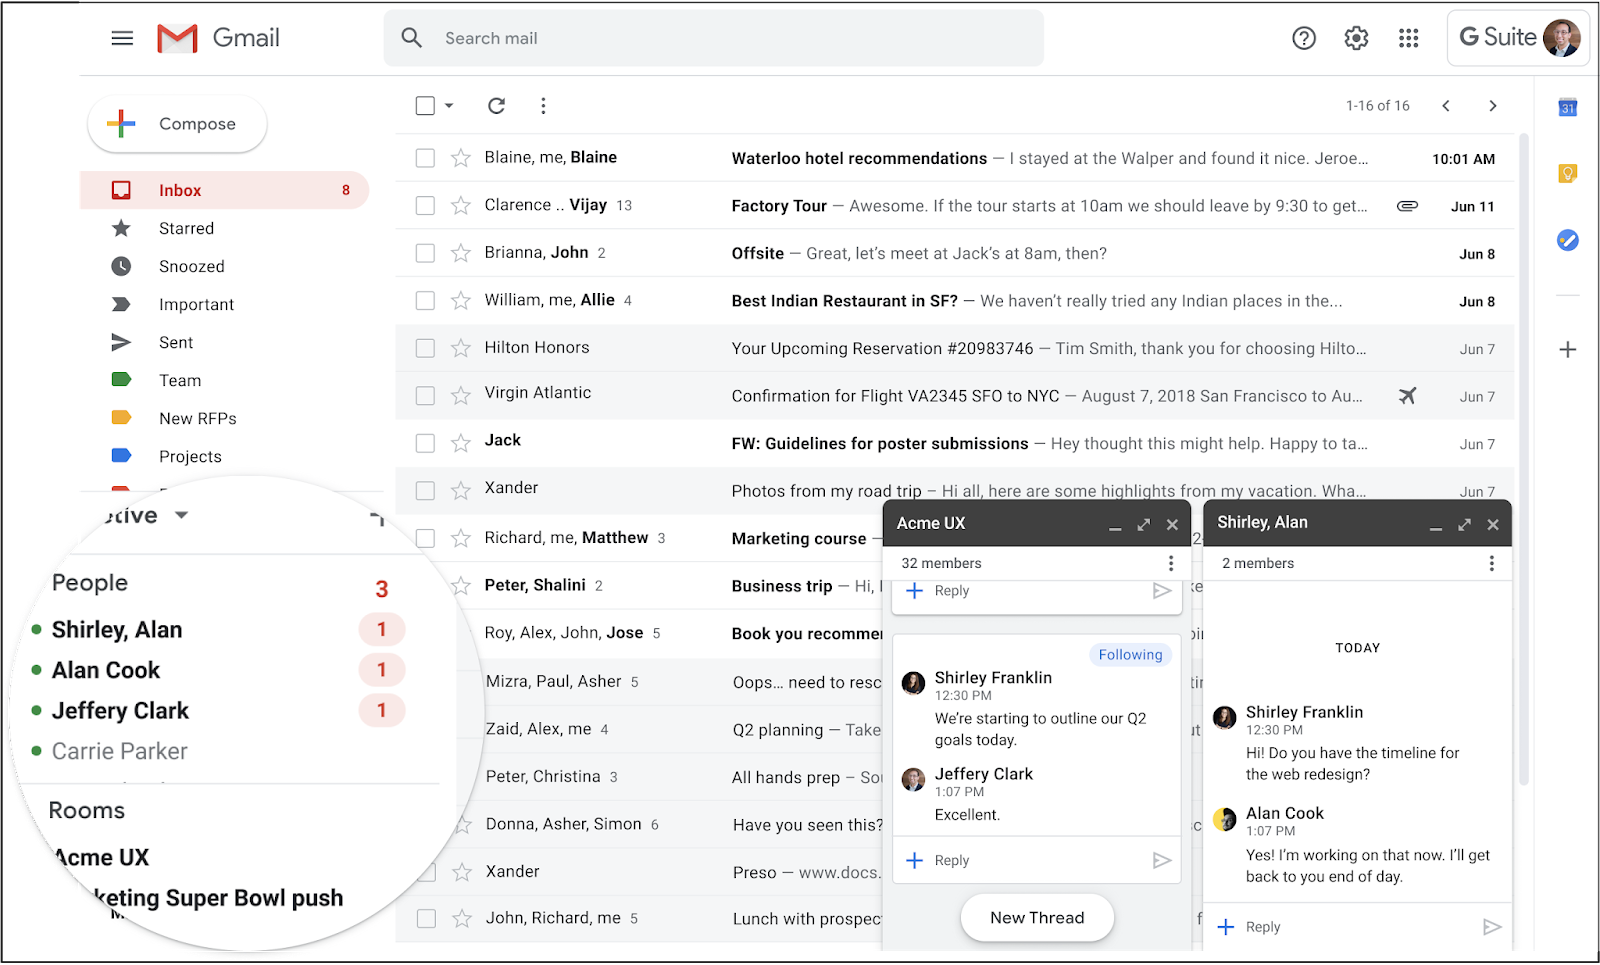 Screenshot of the new Google Chat in Gmail interface. Focus bubble over left sidebar where Chat is now located.